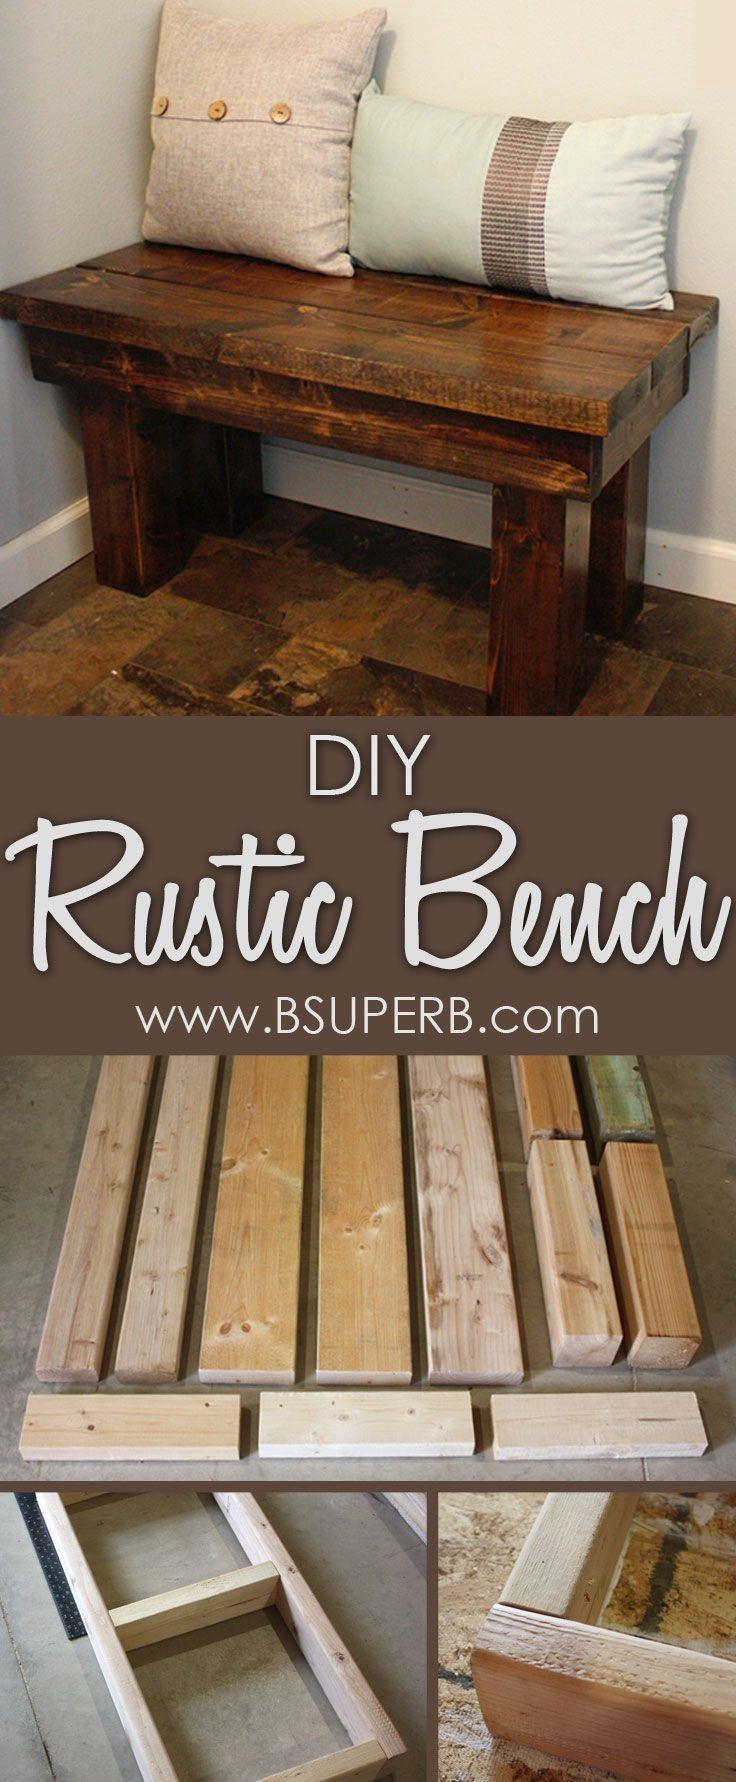 Beginner Woodworking Projects Check Pin For Lots Of Diy Wood